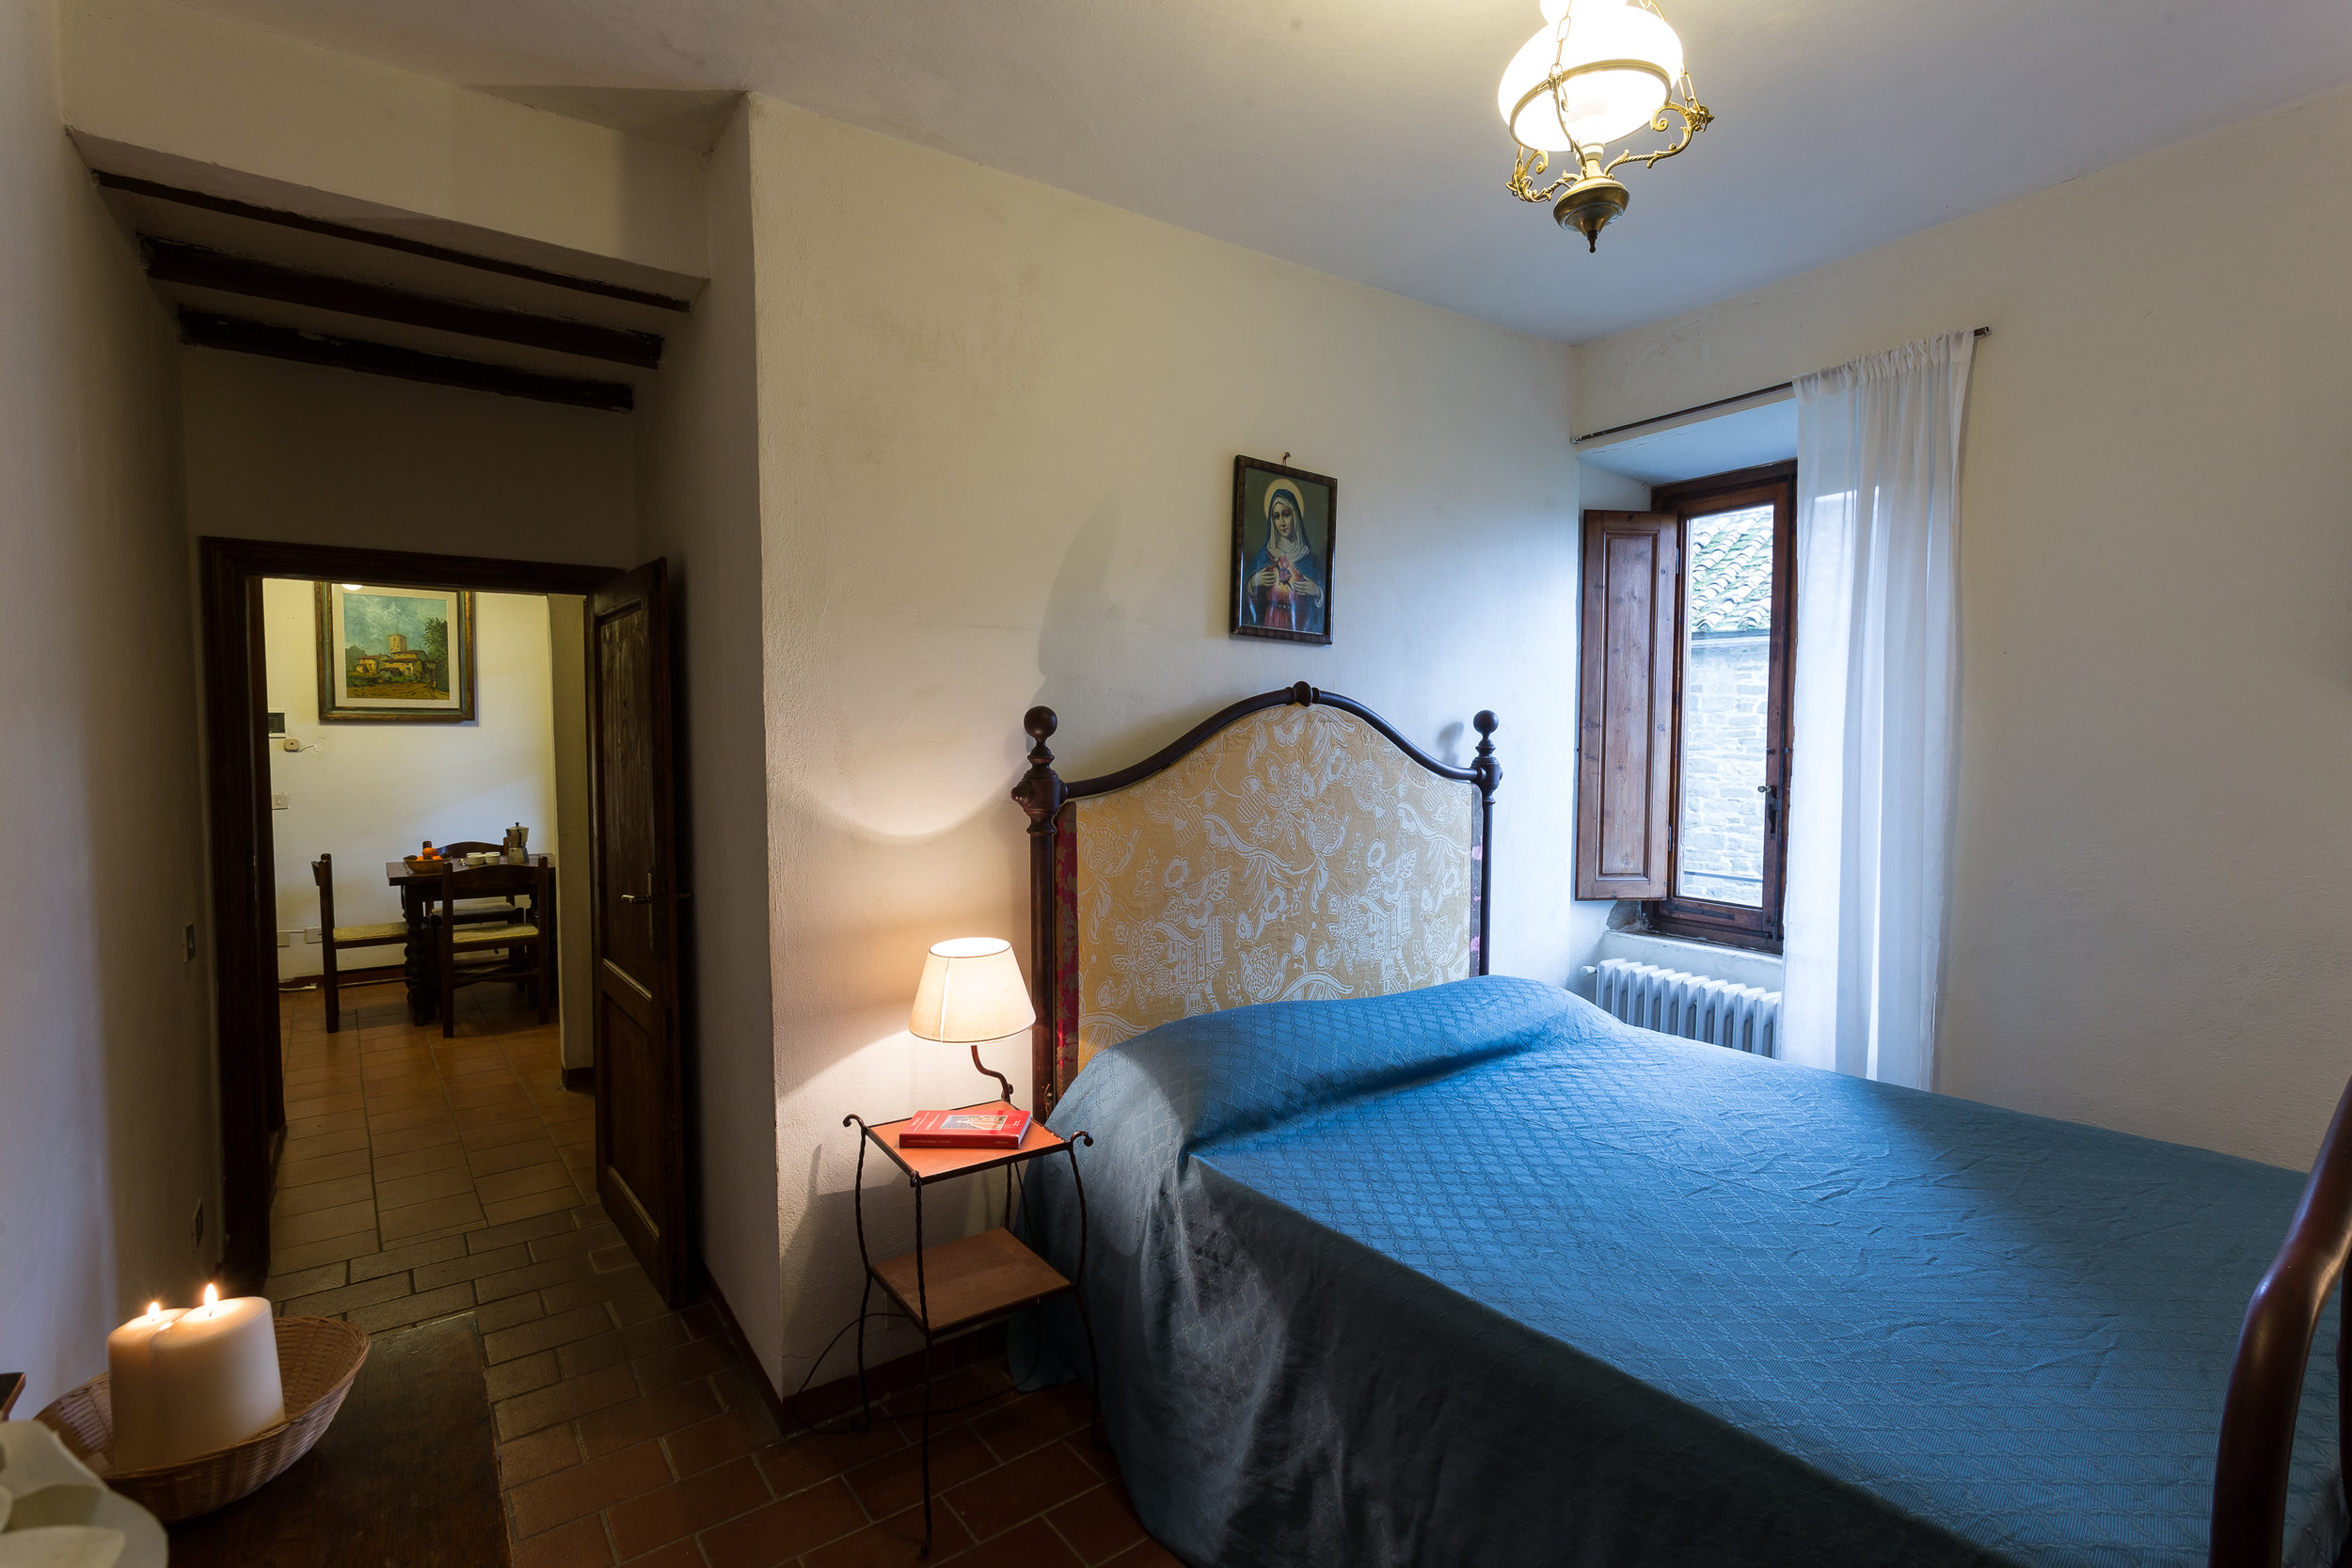 Castello 7 (2 bedroom, 1 bathroom apartment for up to 4 guests)